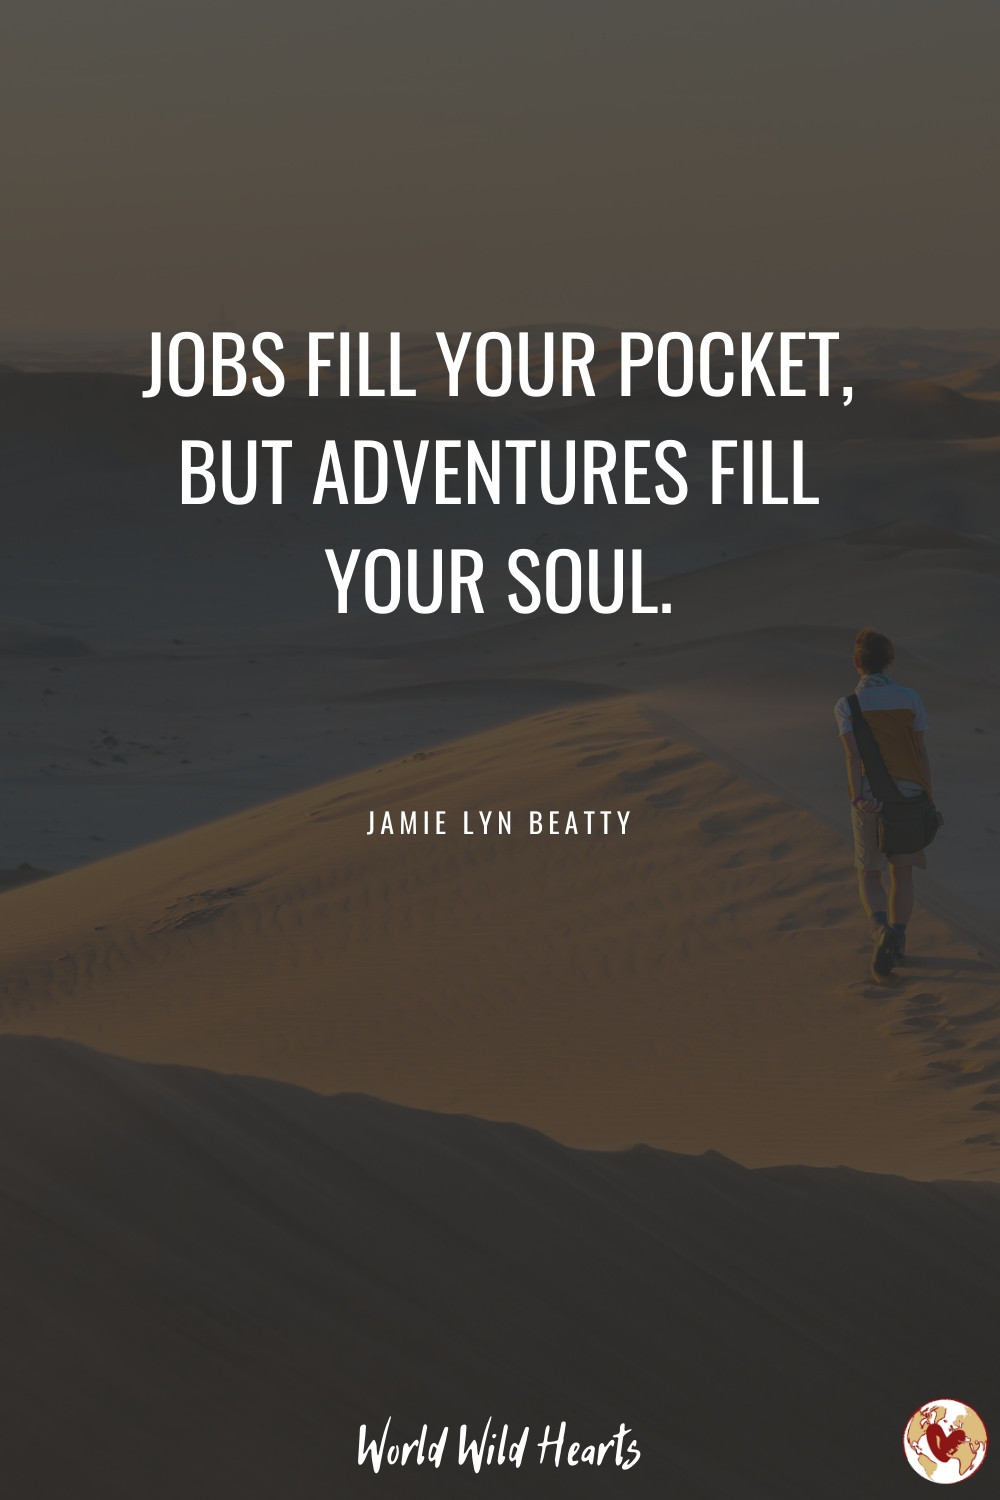 Jobs fill your pocket, but adventures fill your soul